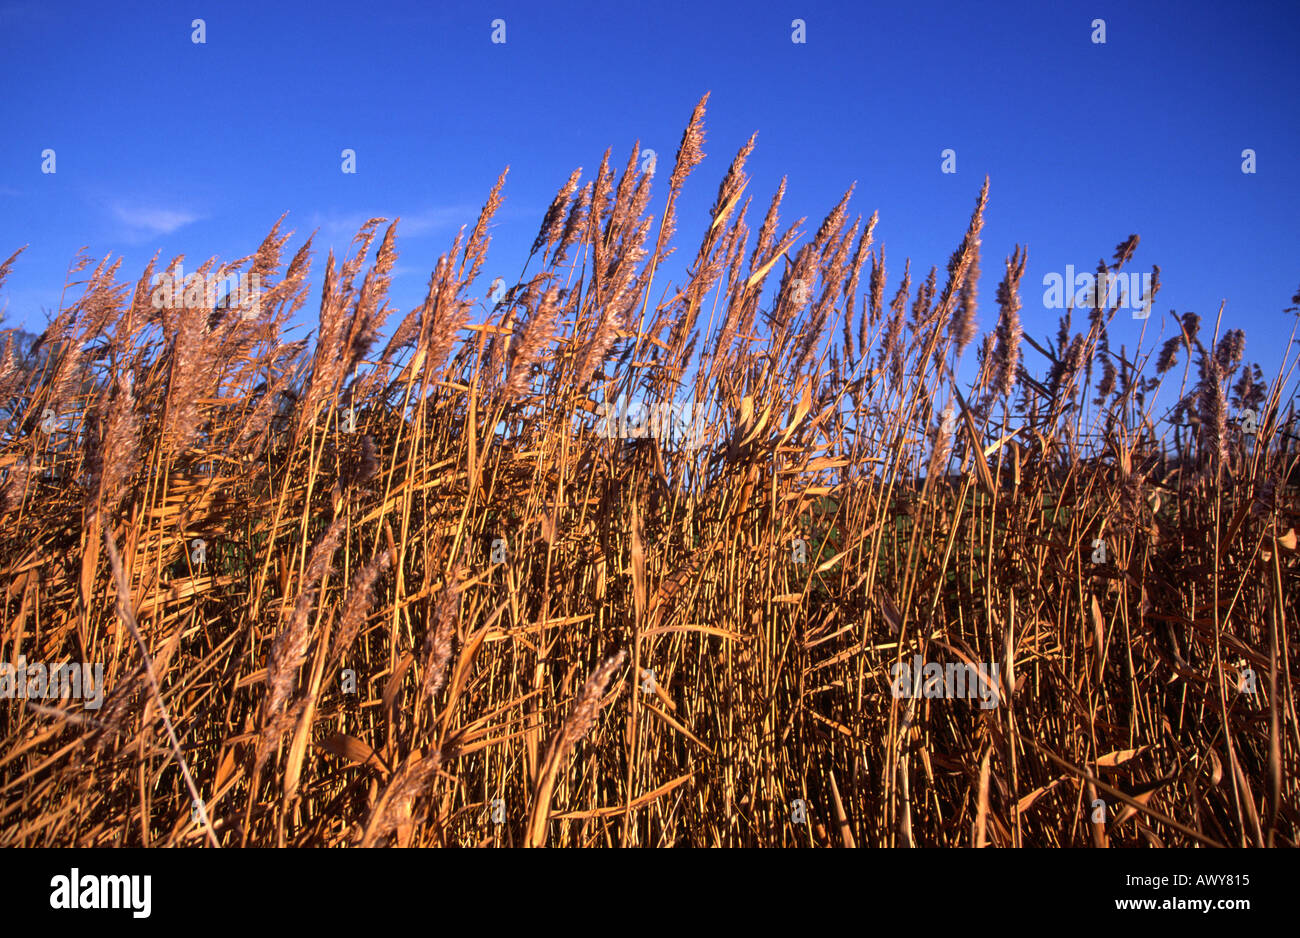 Side view of reed beds against blue sky Snape Suffolk England - Stock Image